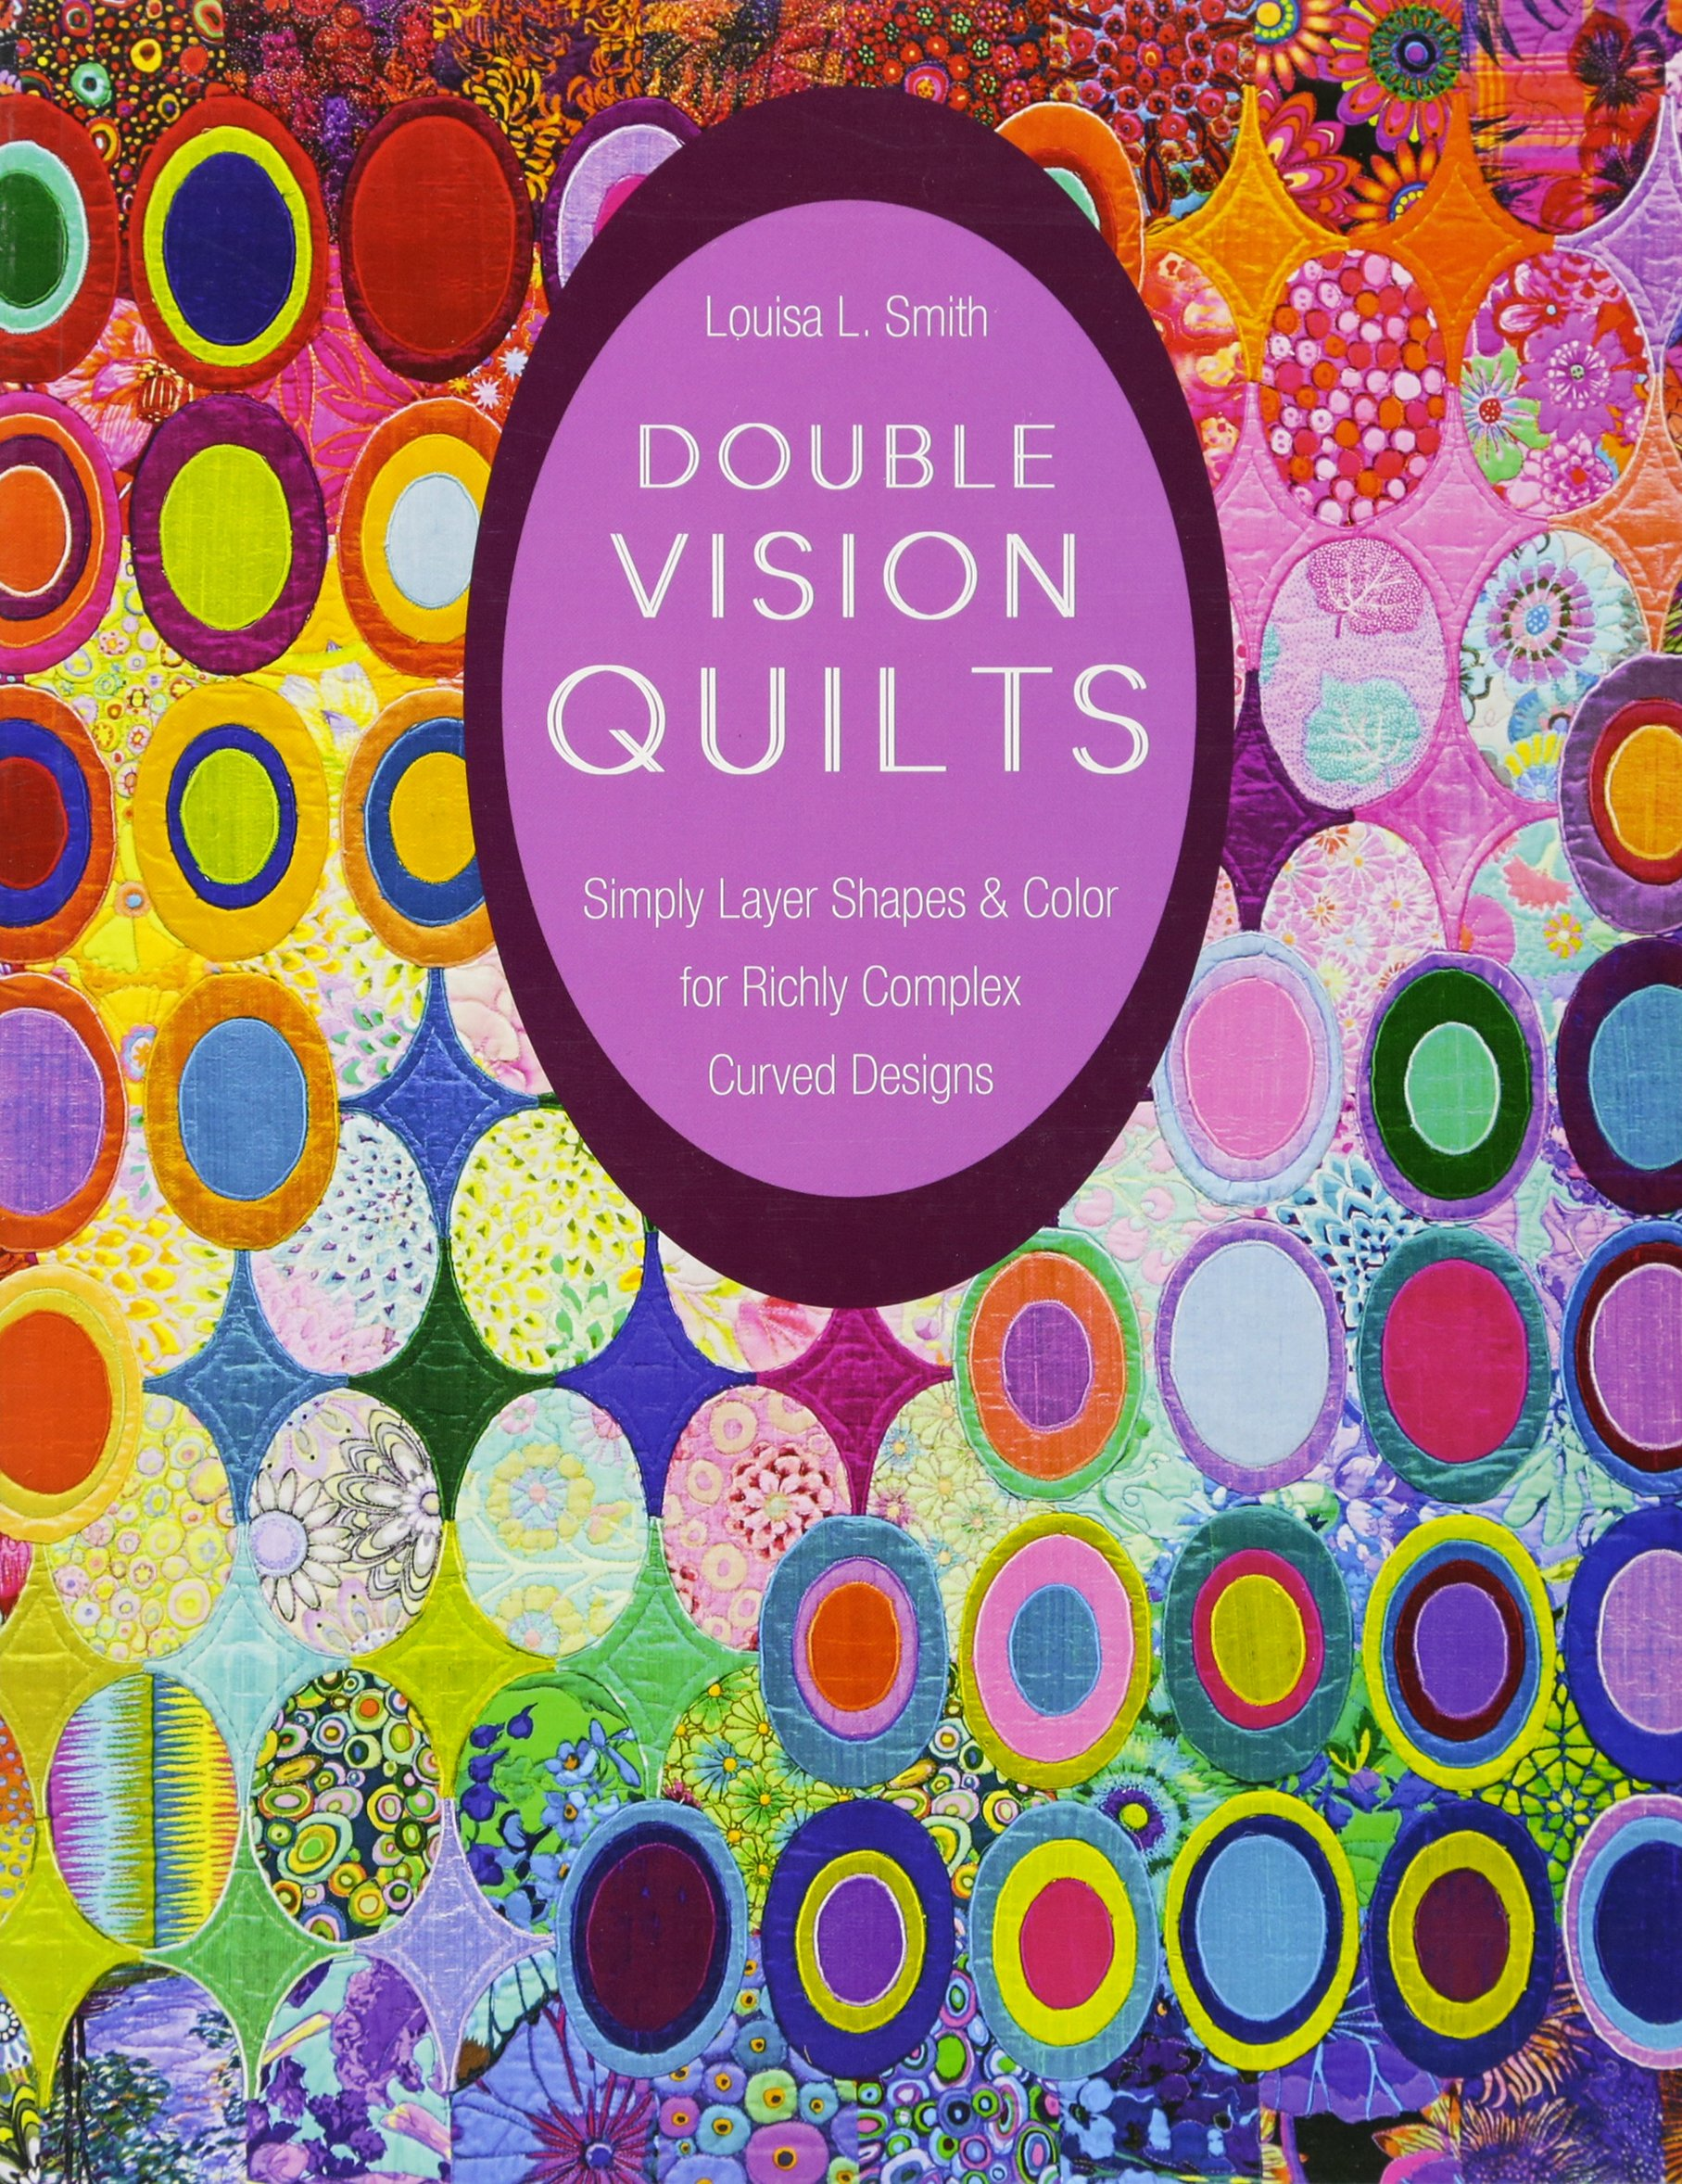 Double Vision Quilts: Simply Layer Shapes & Color for Richly Complex Curved Designs